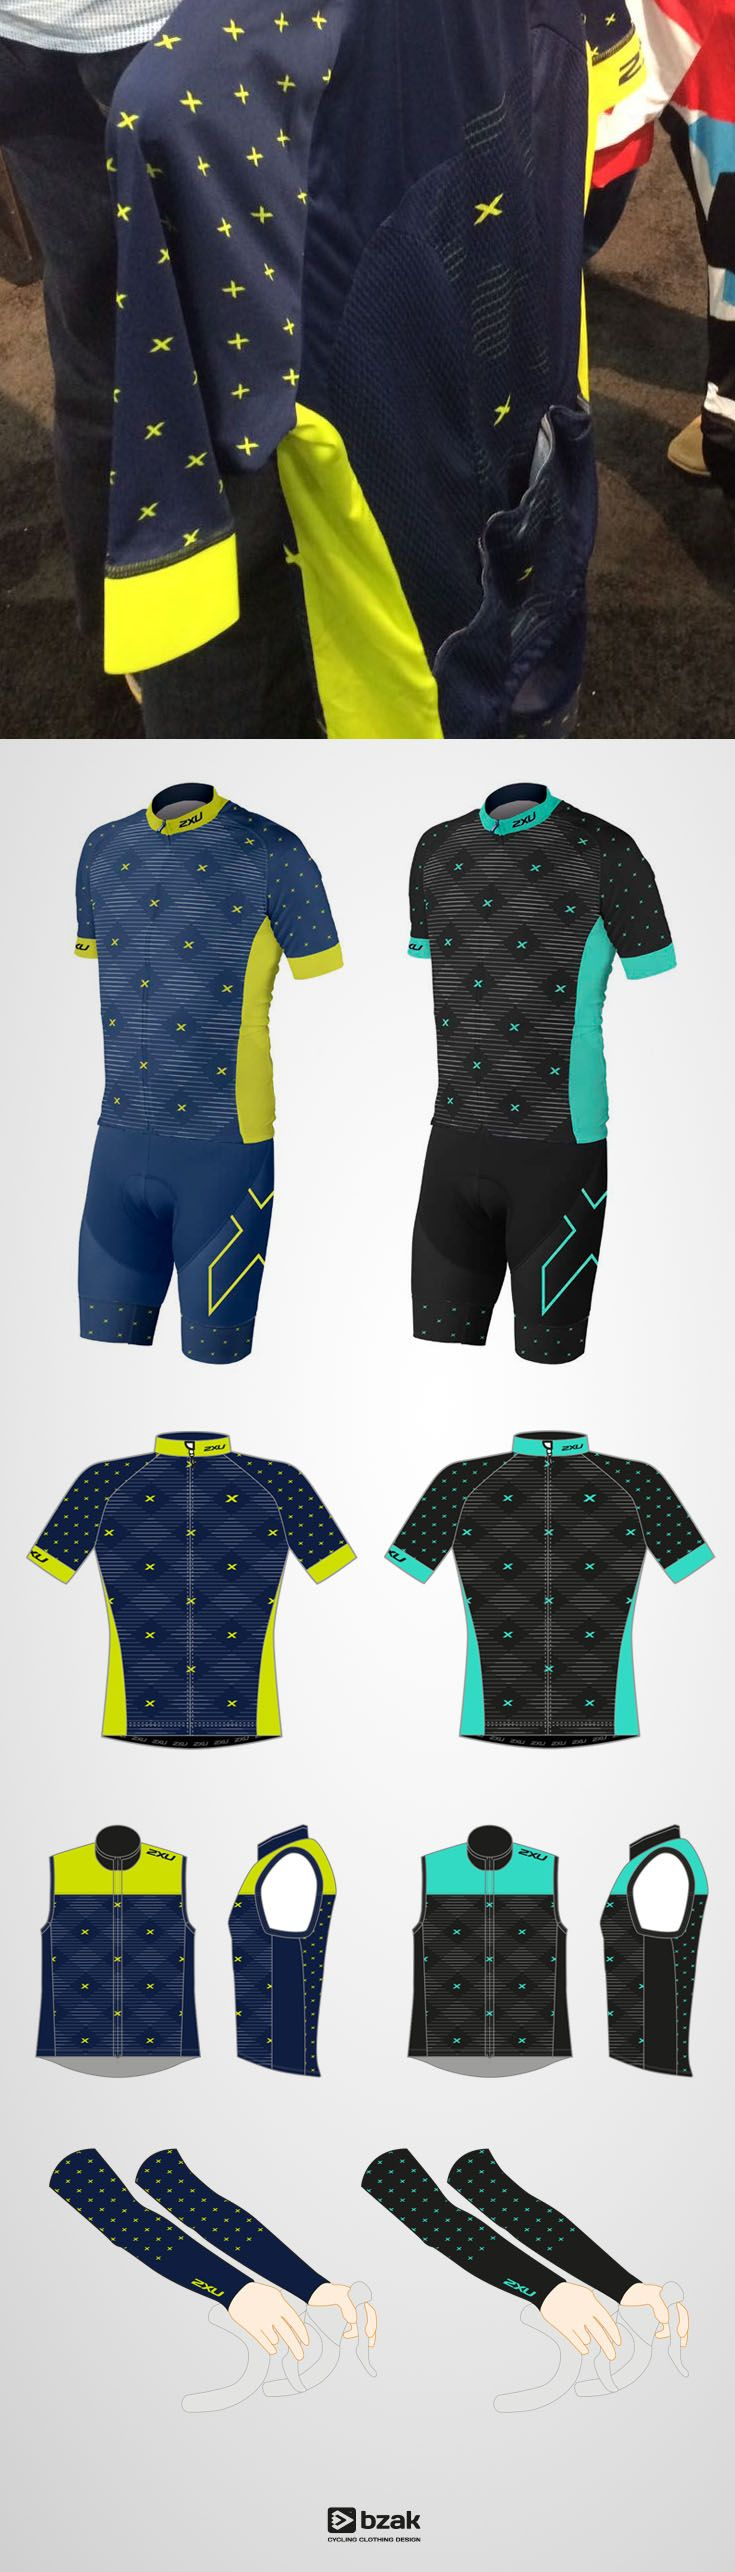 New kit designs for 2XU USA -prototypes launched at Interbike 2016